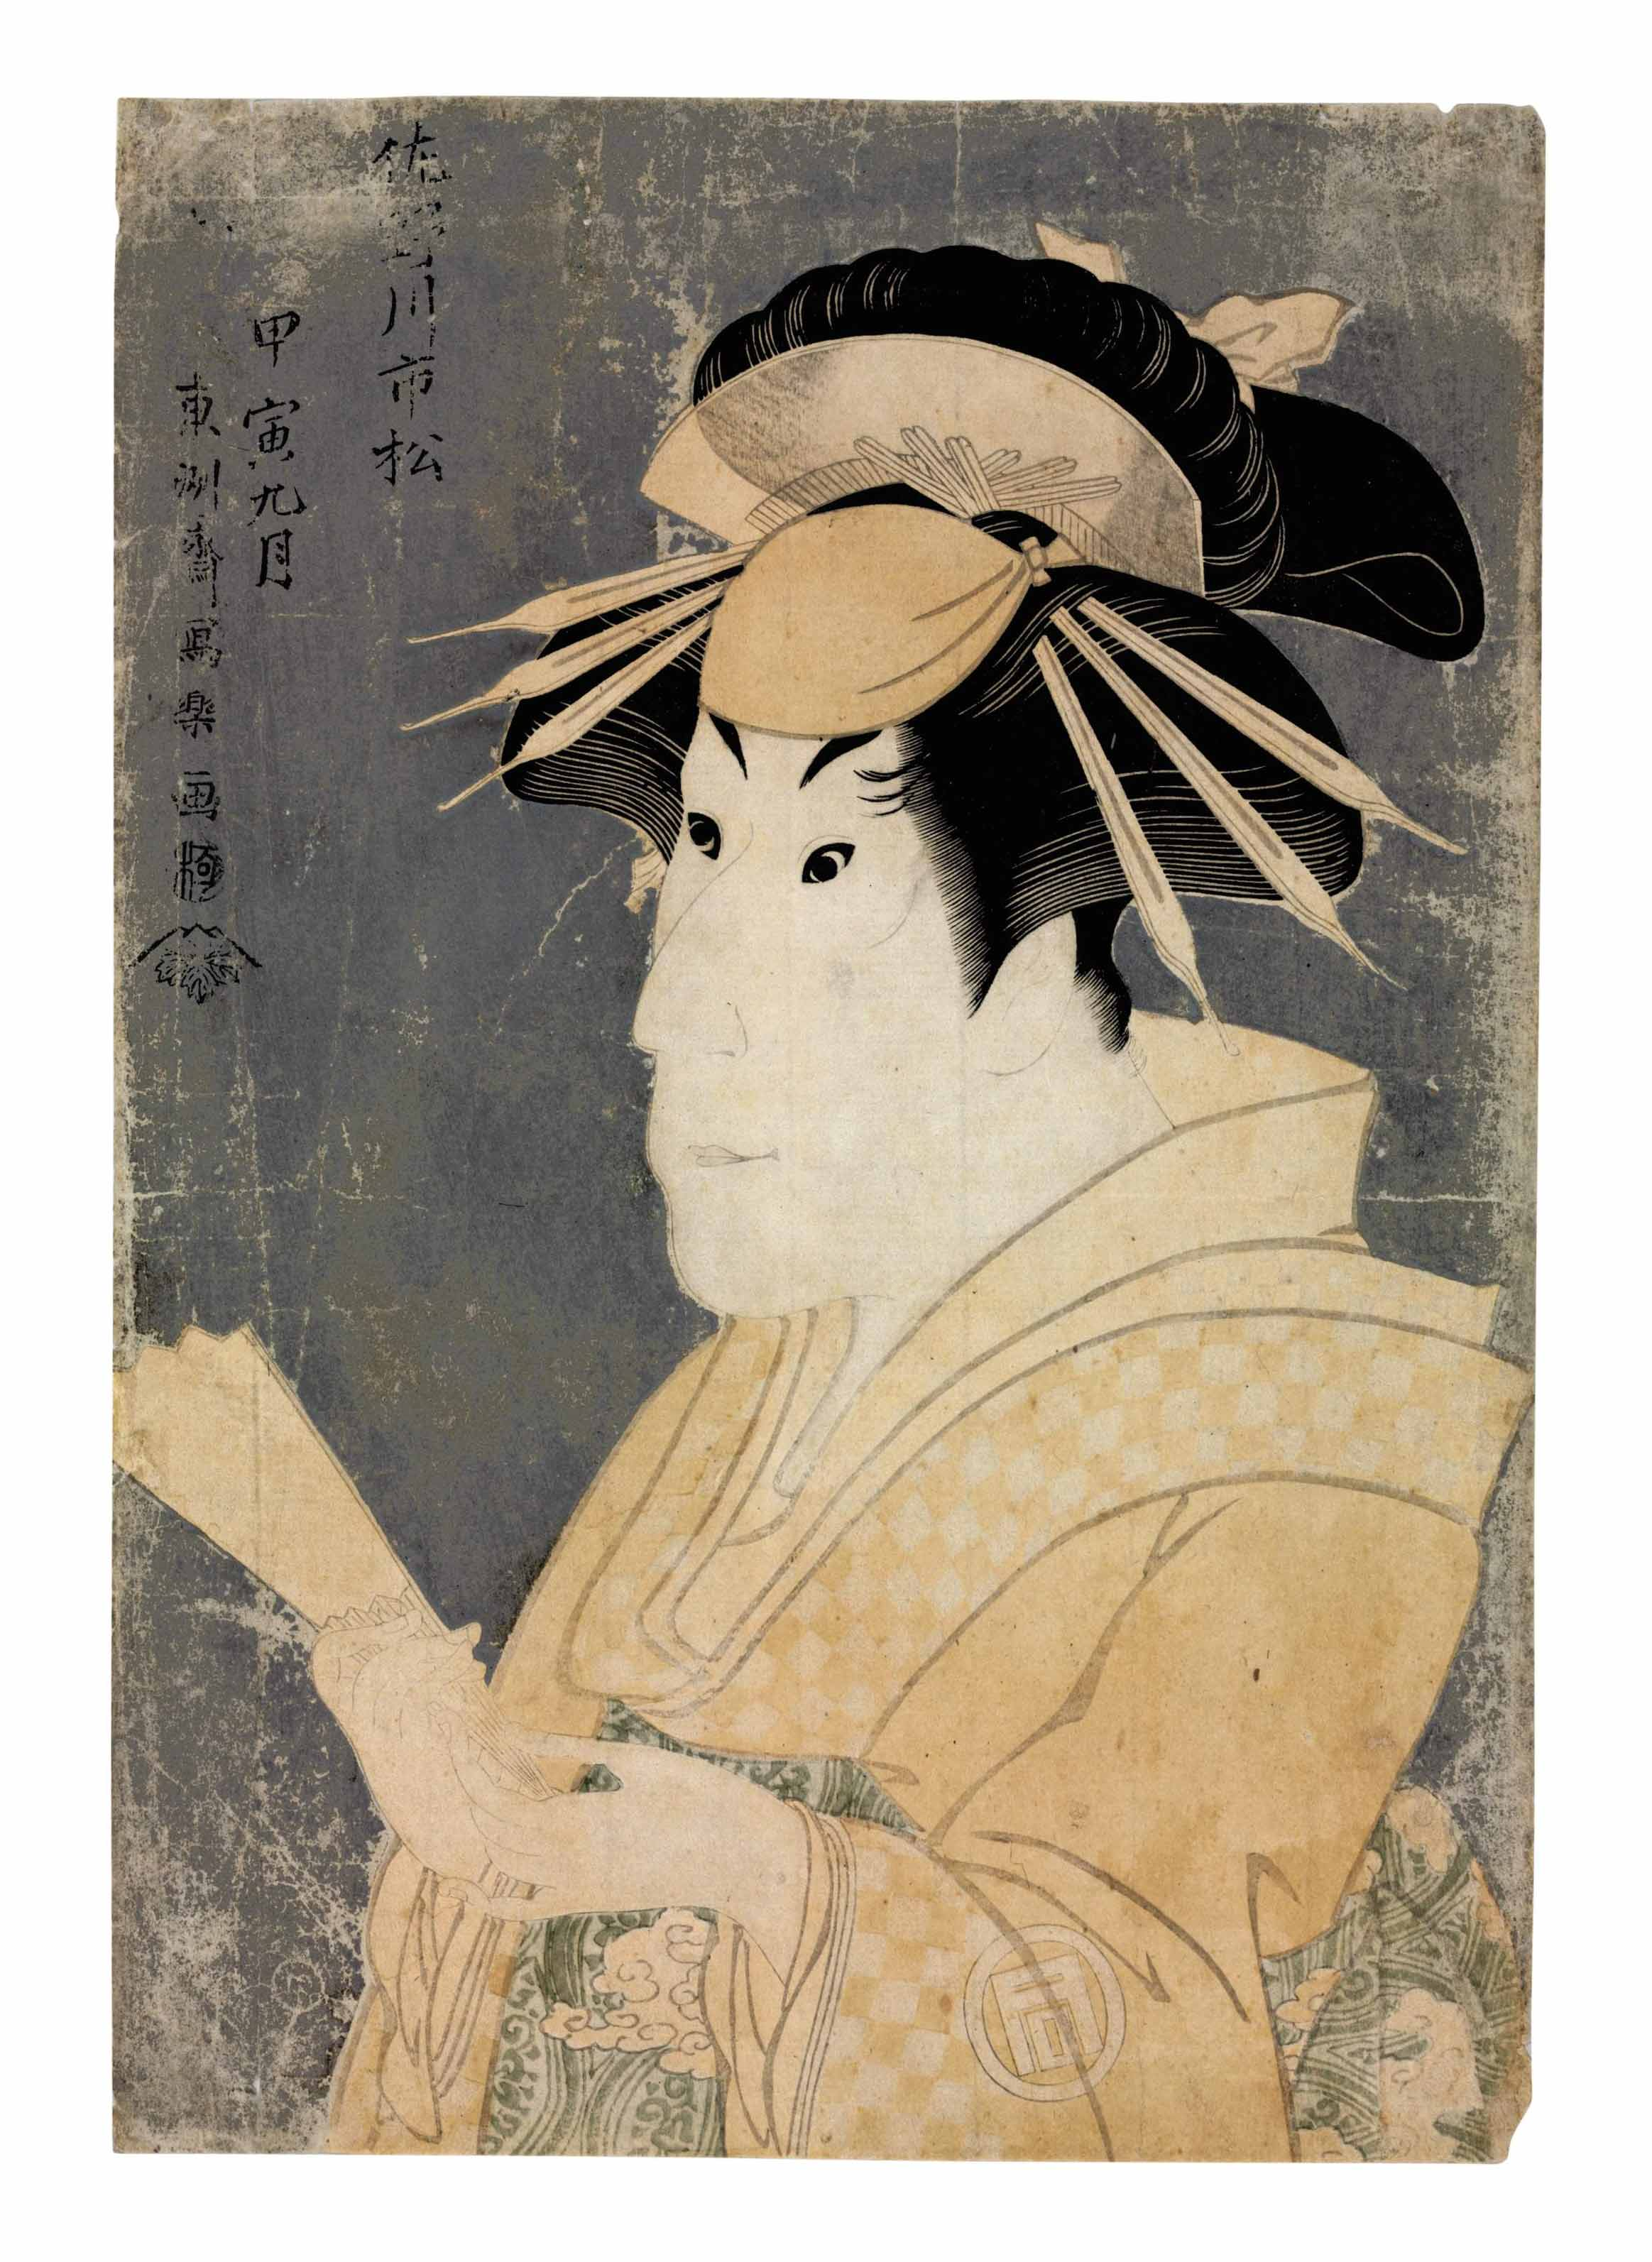 The Actor Sanogawa Ichimatsu III as the Prostitute Onayo of Gion in the Kabuki Play Hanaayame Bunroku Soga (The Iris Soga of the Bunroku Era)